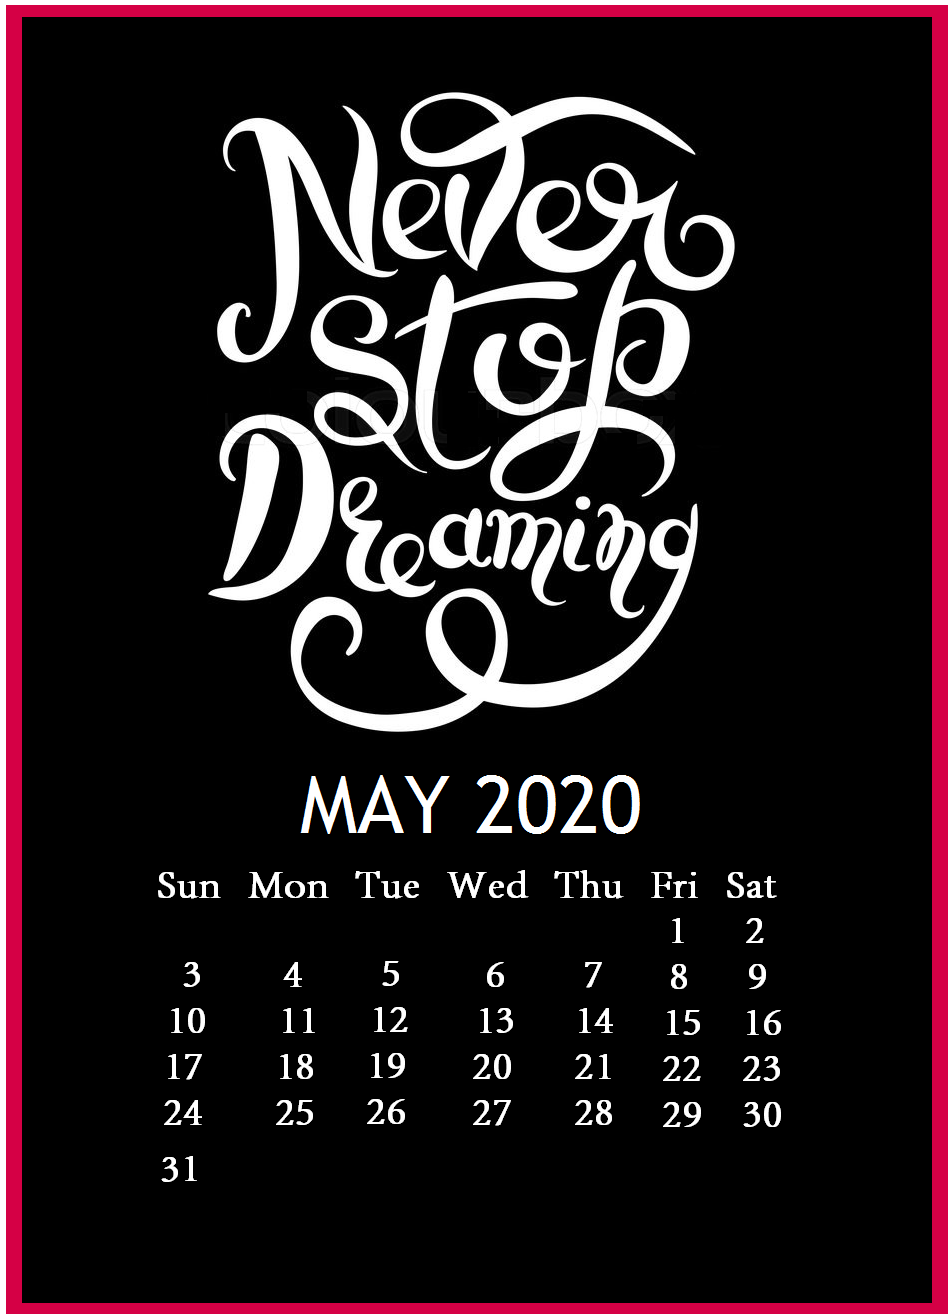 May 2020 Famous Quotes Calendar